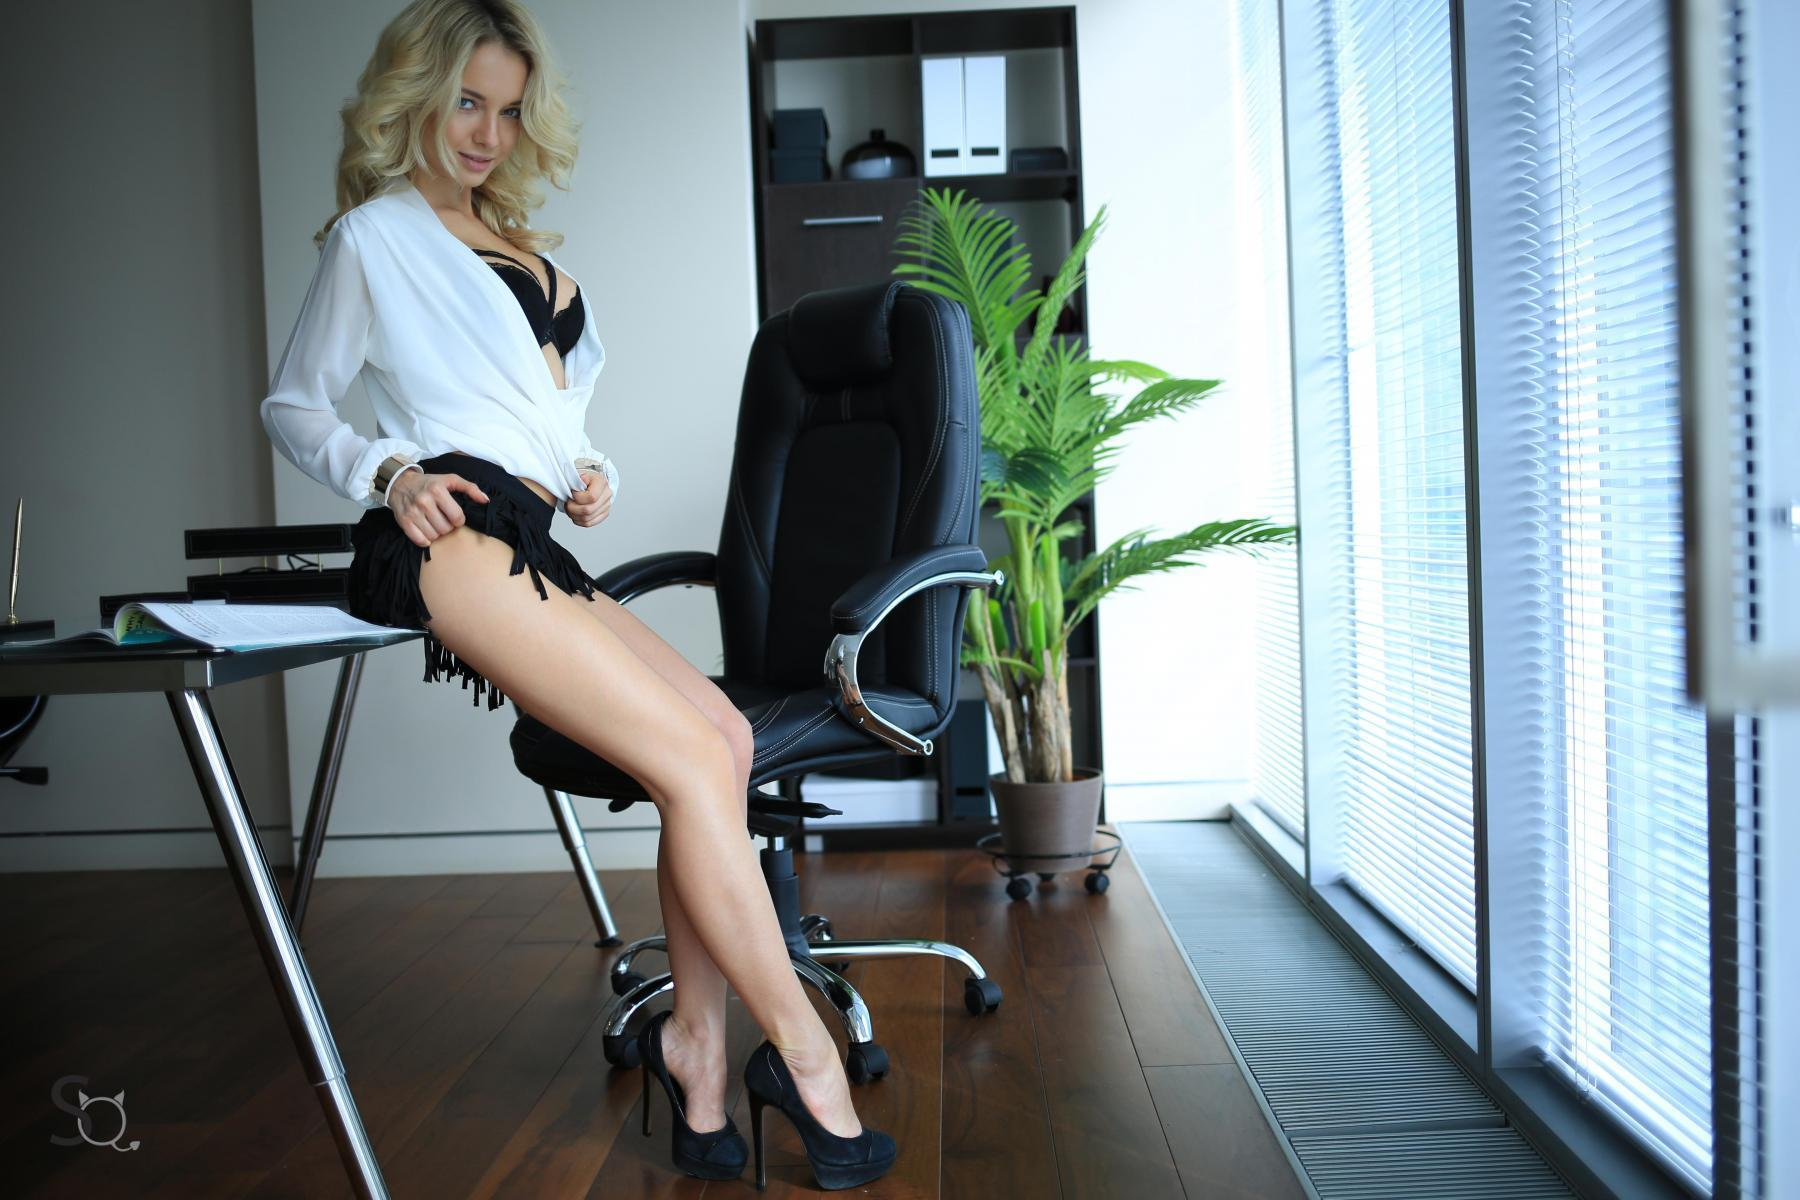 MonroQ standing by her office desk to show her beautiful long legs-StasyQ